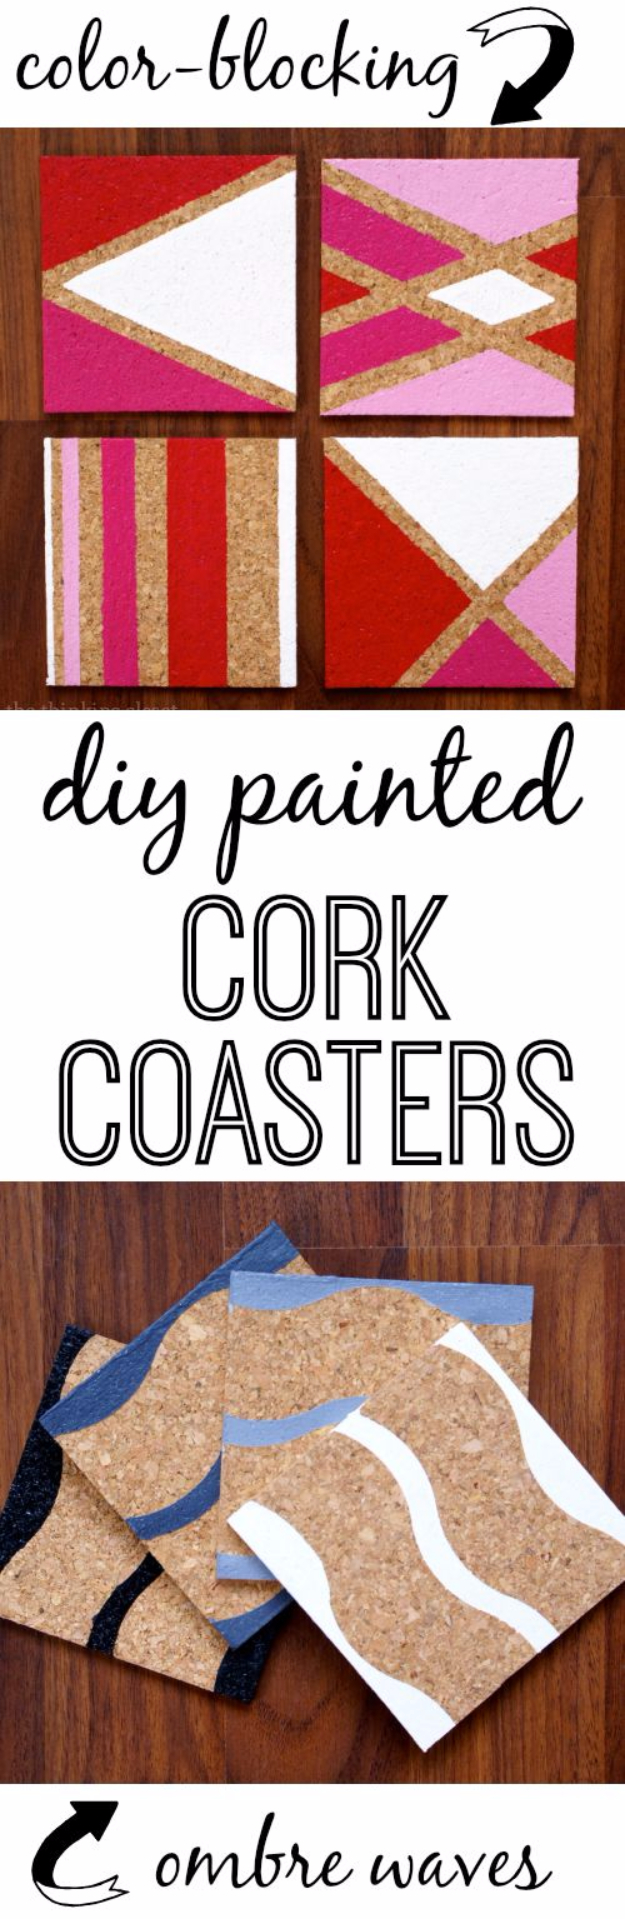 DIY Coasters - DIY Painted Cork Coasters - Best Quick DIY Gifts and Home Decor - Easy Step by Step Tutorials for DIY Coaster Projects - Mod Podge, Tile, Painted, Photo and Sewing Projects - Cool Christmas Presents for Him and Her - DIY Projects and Crafts by DIY Joy http://diyjoy.com/diy-coasters